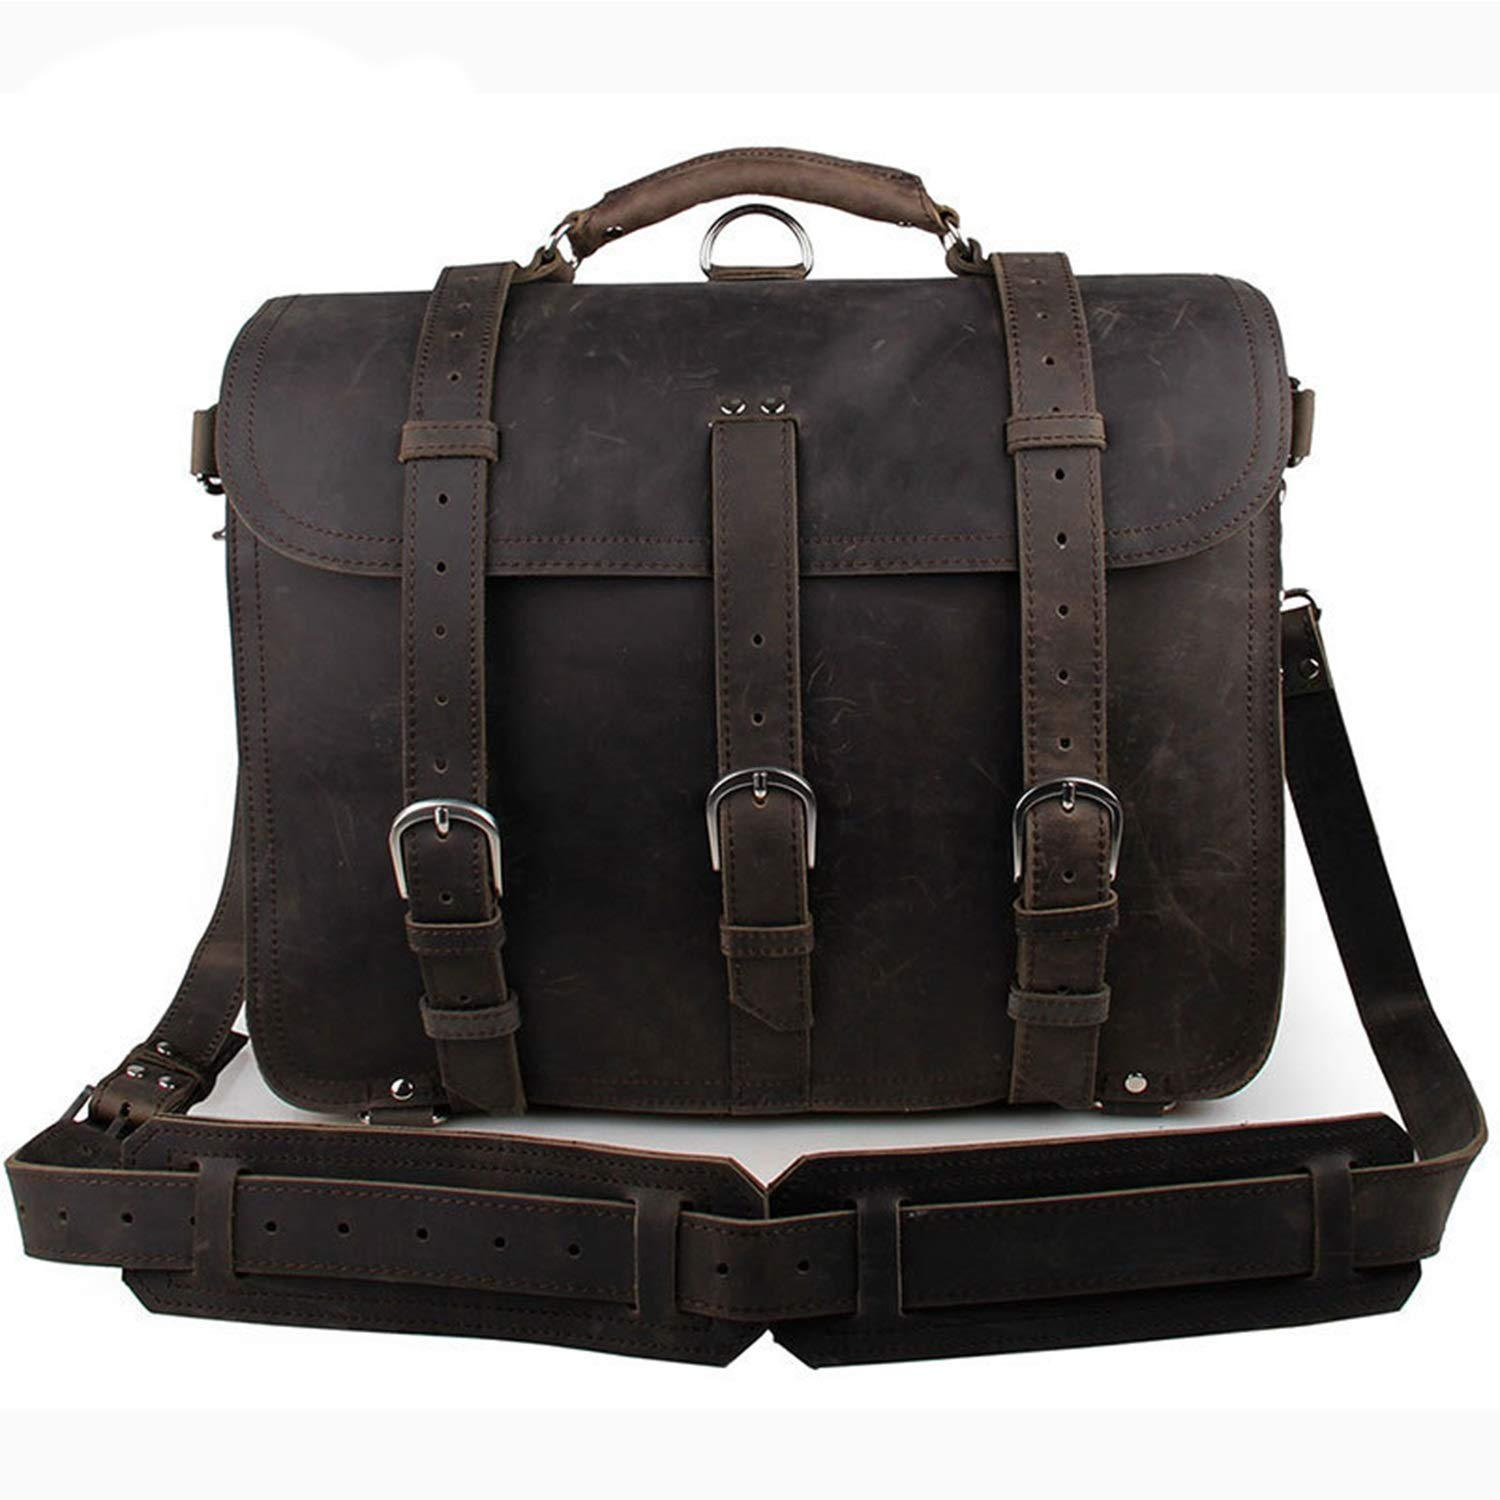 Men's Shoulder Bags Leather Retro Crazy Horse Leather Tote Bag Domineering Bags for Travel (color   Dark Brown)